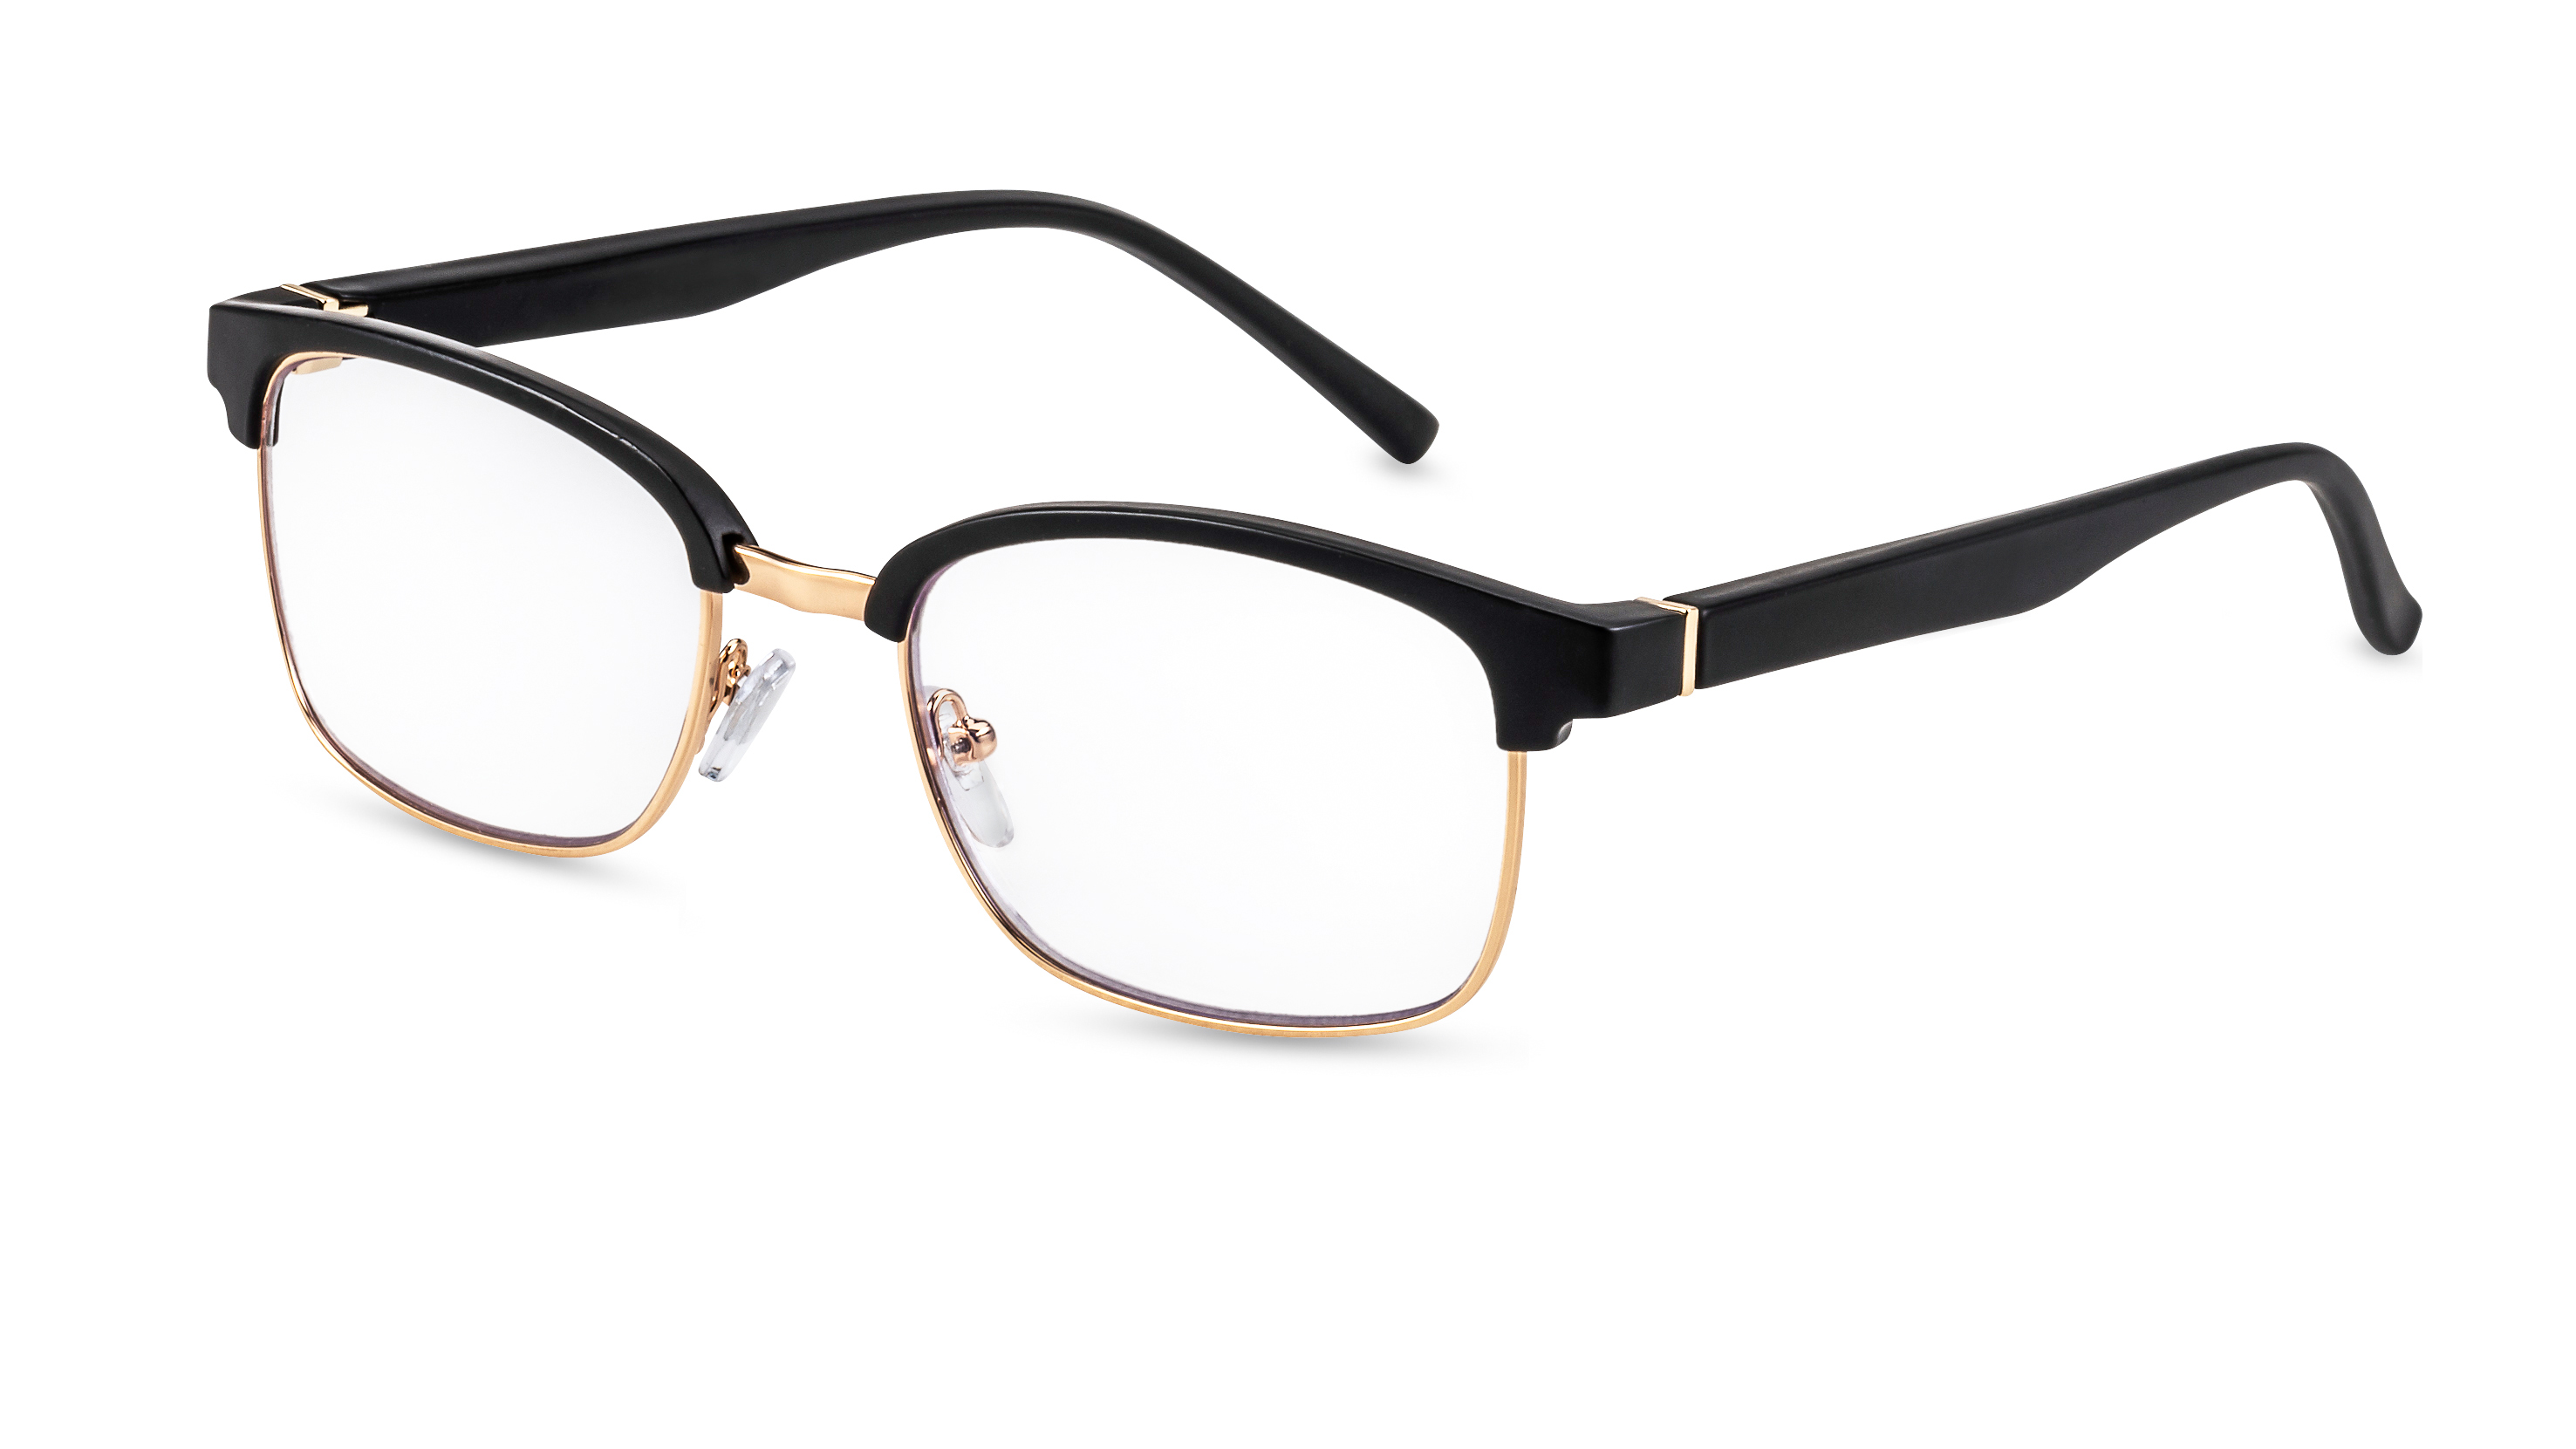 Main view, reading glasses palermo black-gold